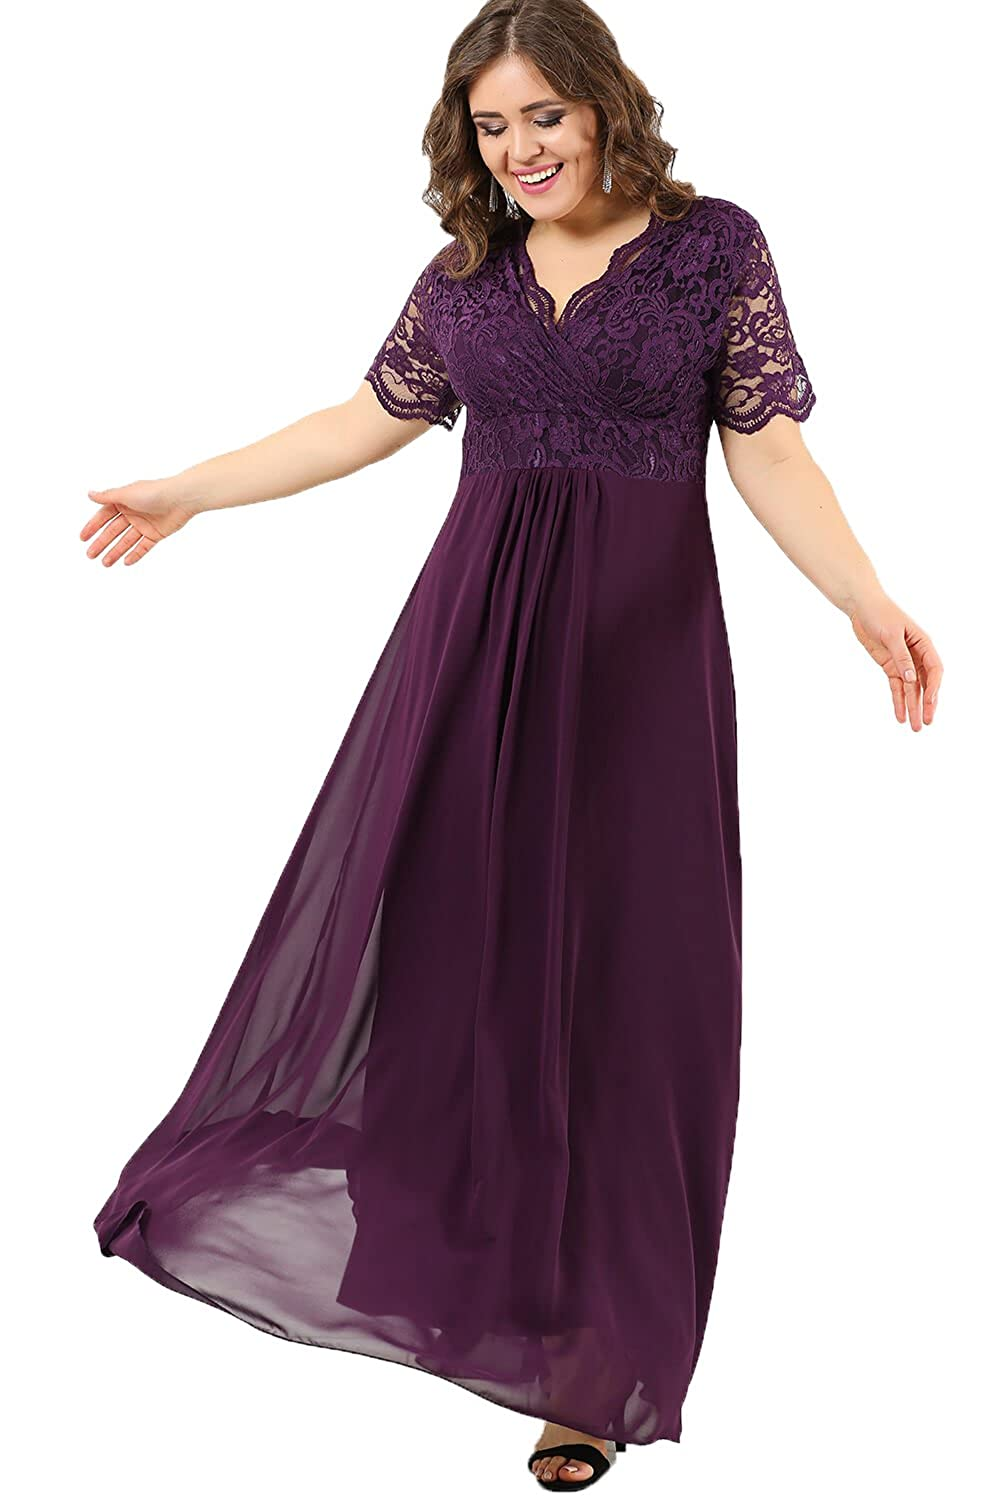 14f47c6c8 Angelino Boutique Plus Size Women's Full Lace Fabric Top Guipure Short  Sleeve Evening Dress Purple DD793 at Amazon Women's Clothing store: